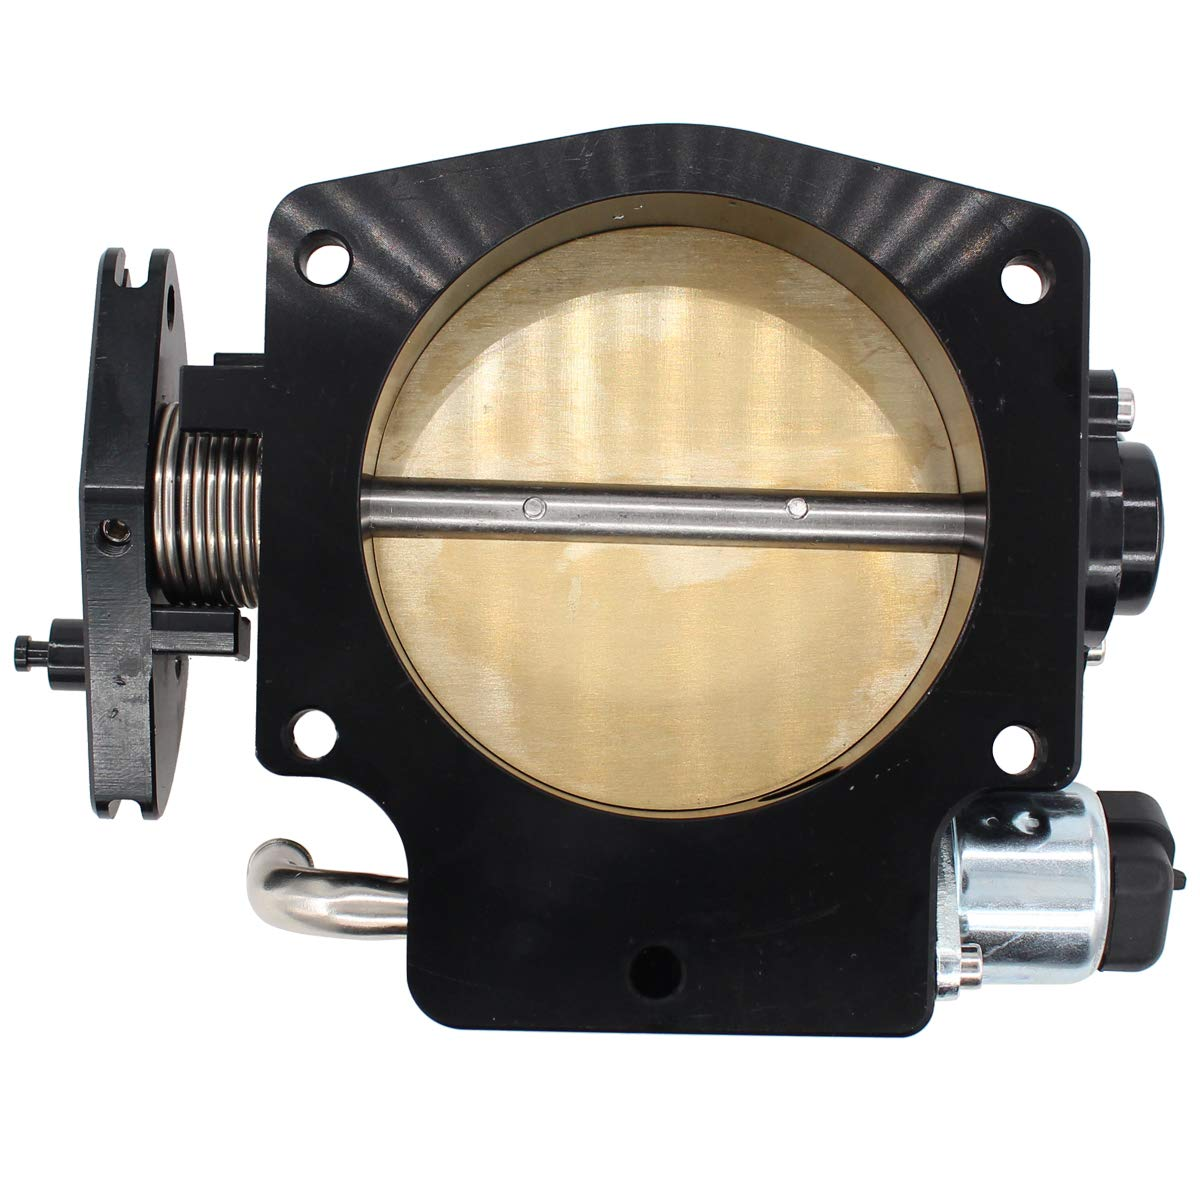 NewYall 92mm Throttle Body with TPS Throttle Position and IAC Idle Air Control Sensors